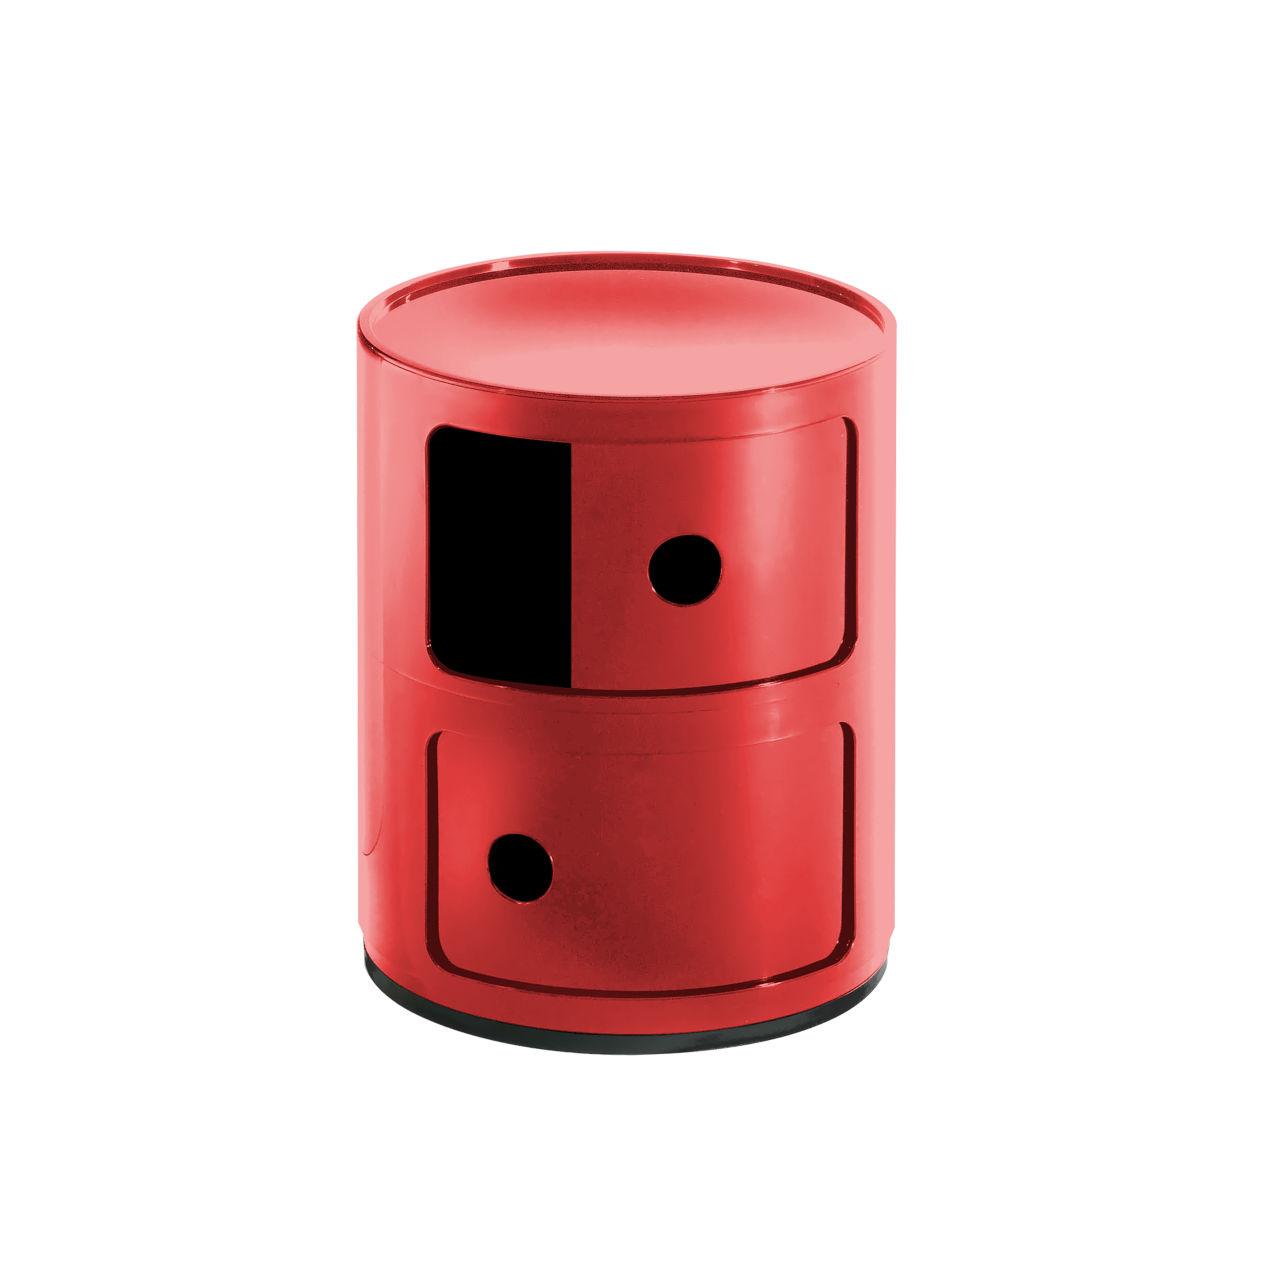 Componibili Small Round Storage Modules in Red by Kartell